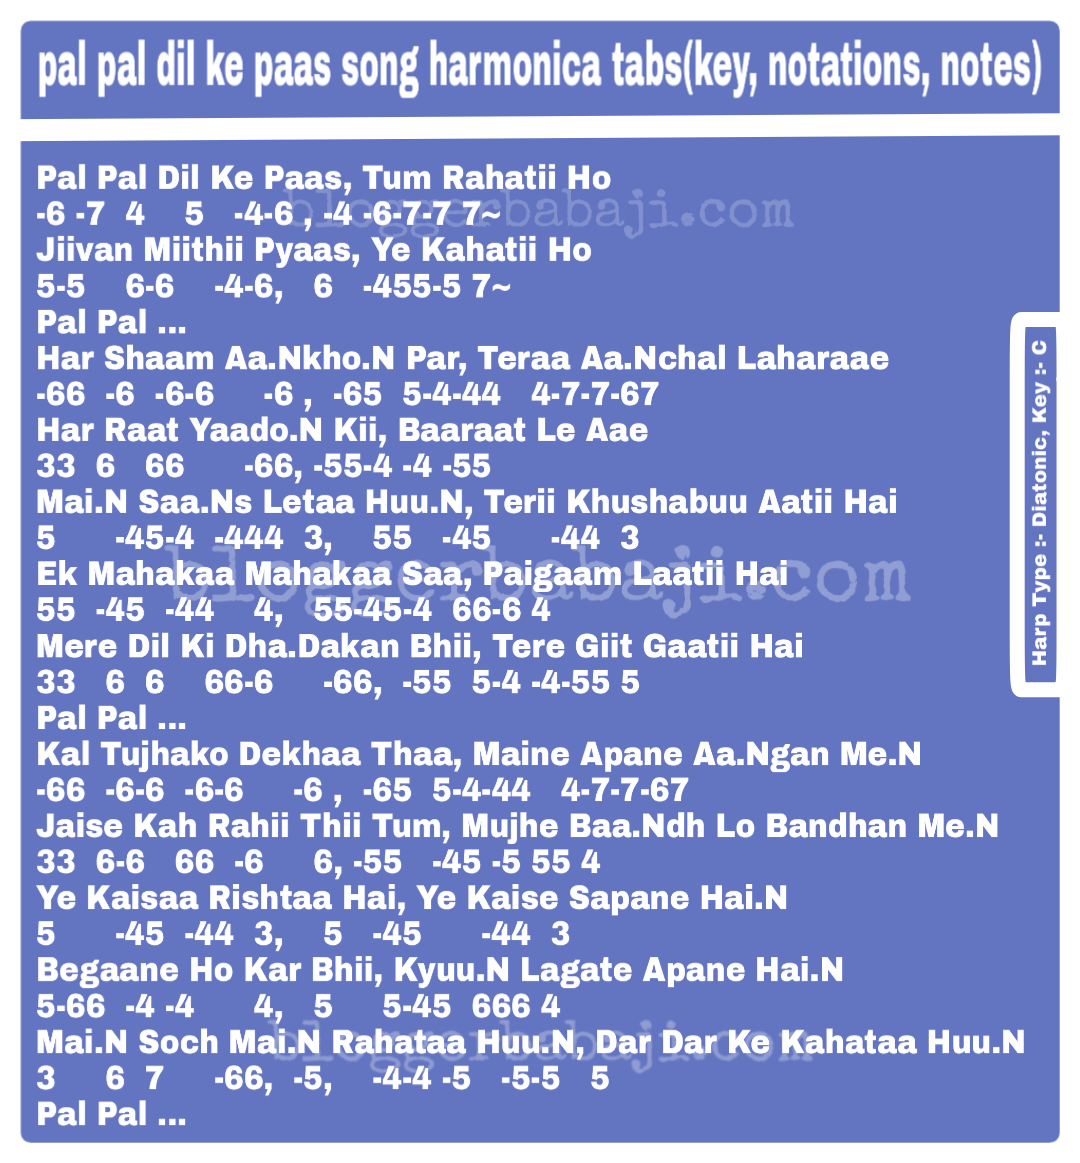 Pal Pal Dil Ke Paas Song Harmonica Tabs Key Notations Notes Ever since the bollywood film industry modern bollywood songs are a combination of vocal, instruments, and technology. pal pal dil ke paas song harmonica tabs